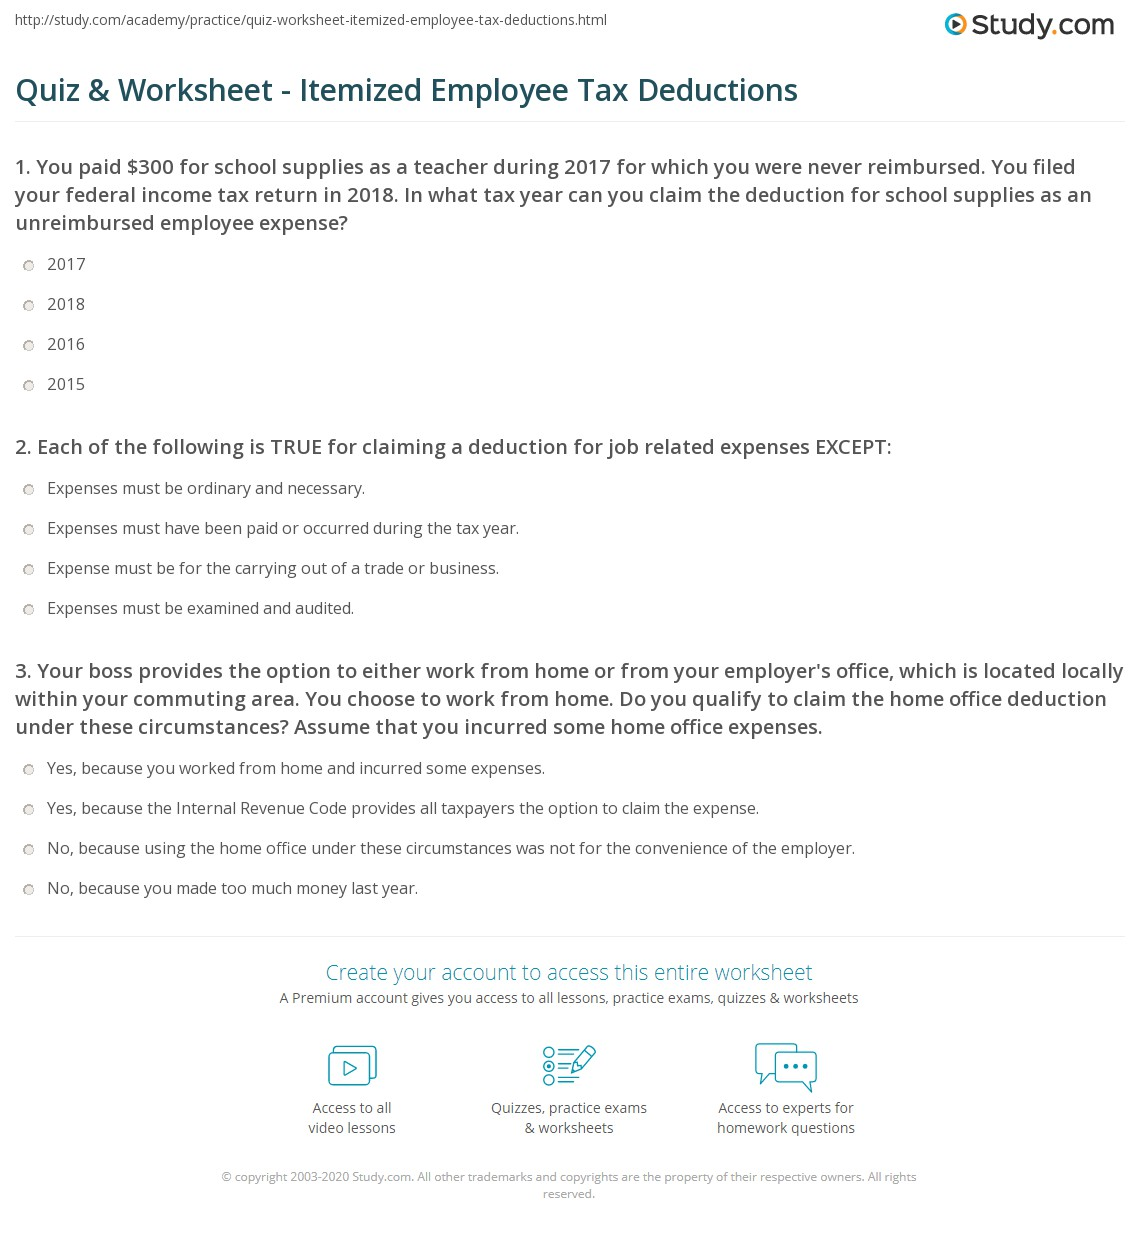 Itemized Employee Tax Deductions